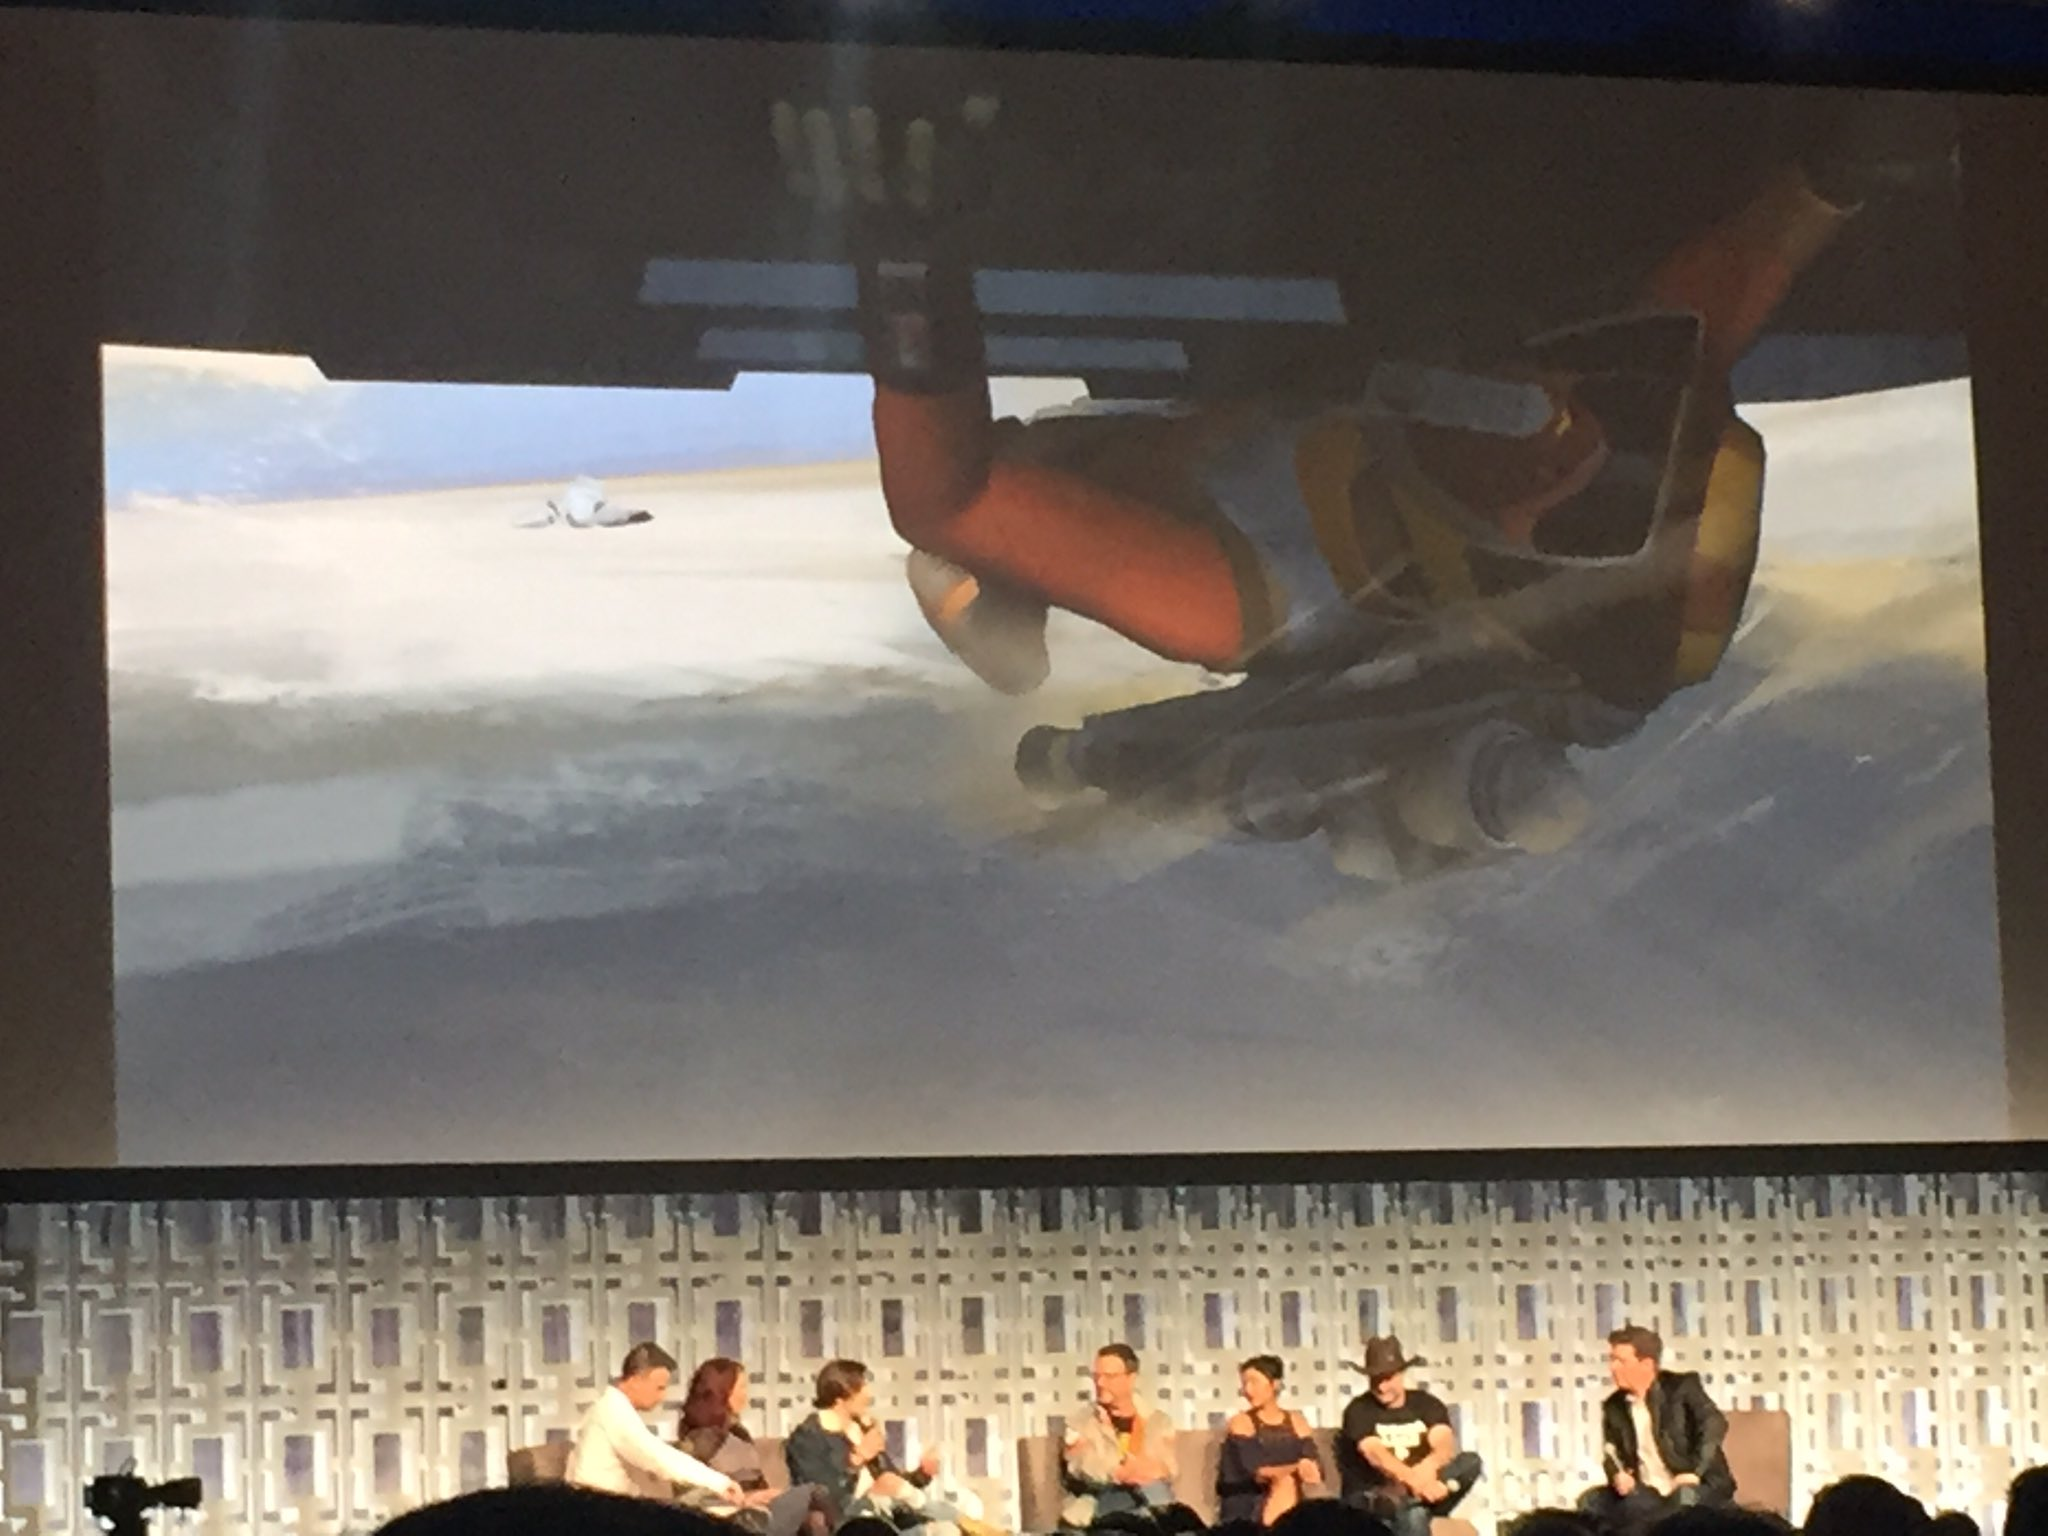 Star Wars Rebels: The Beginning of the End